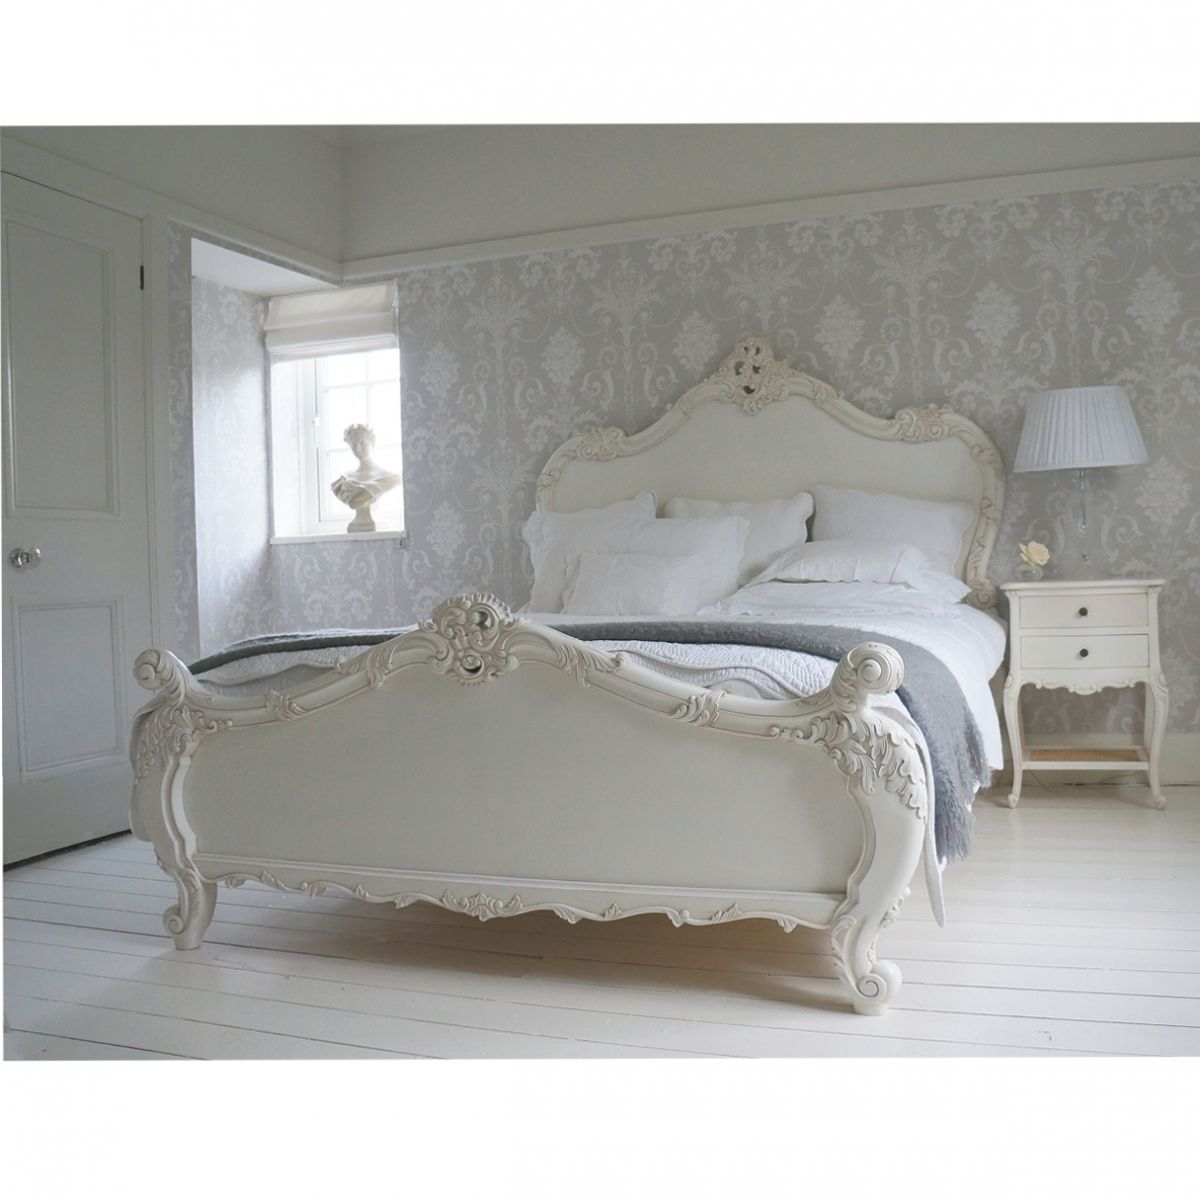 A bed fit for a princess   Frenchbedroom. Diana Bust   French bed  Sassy and Bedrooms